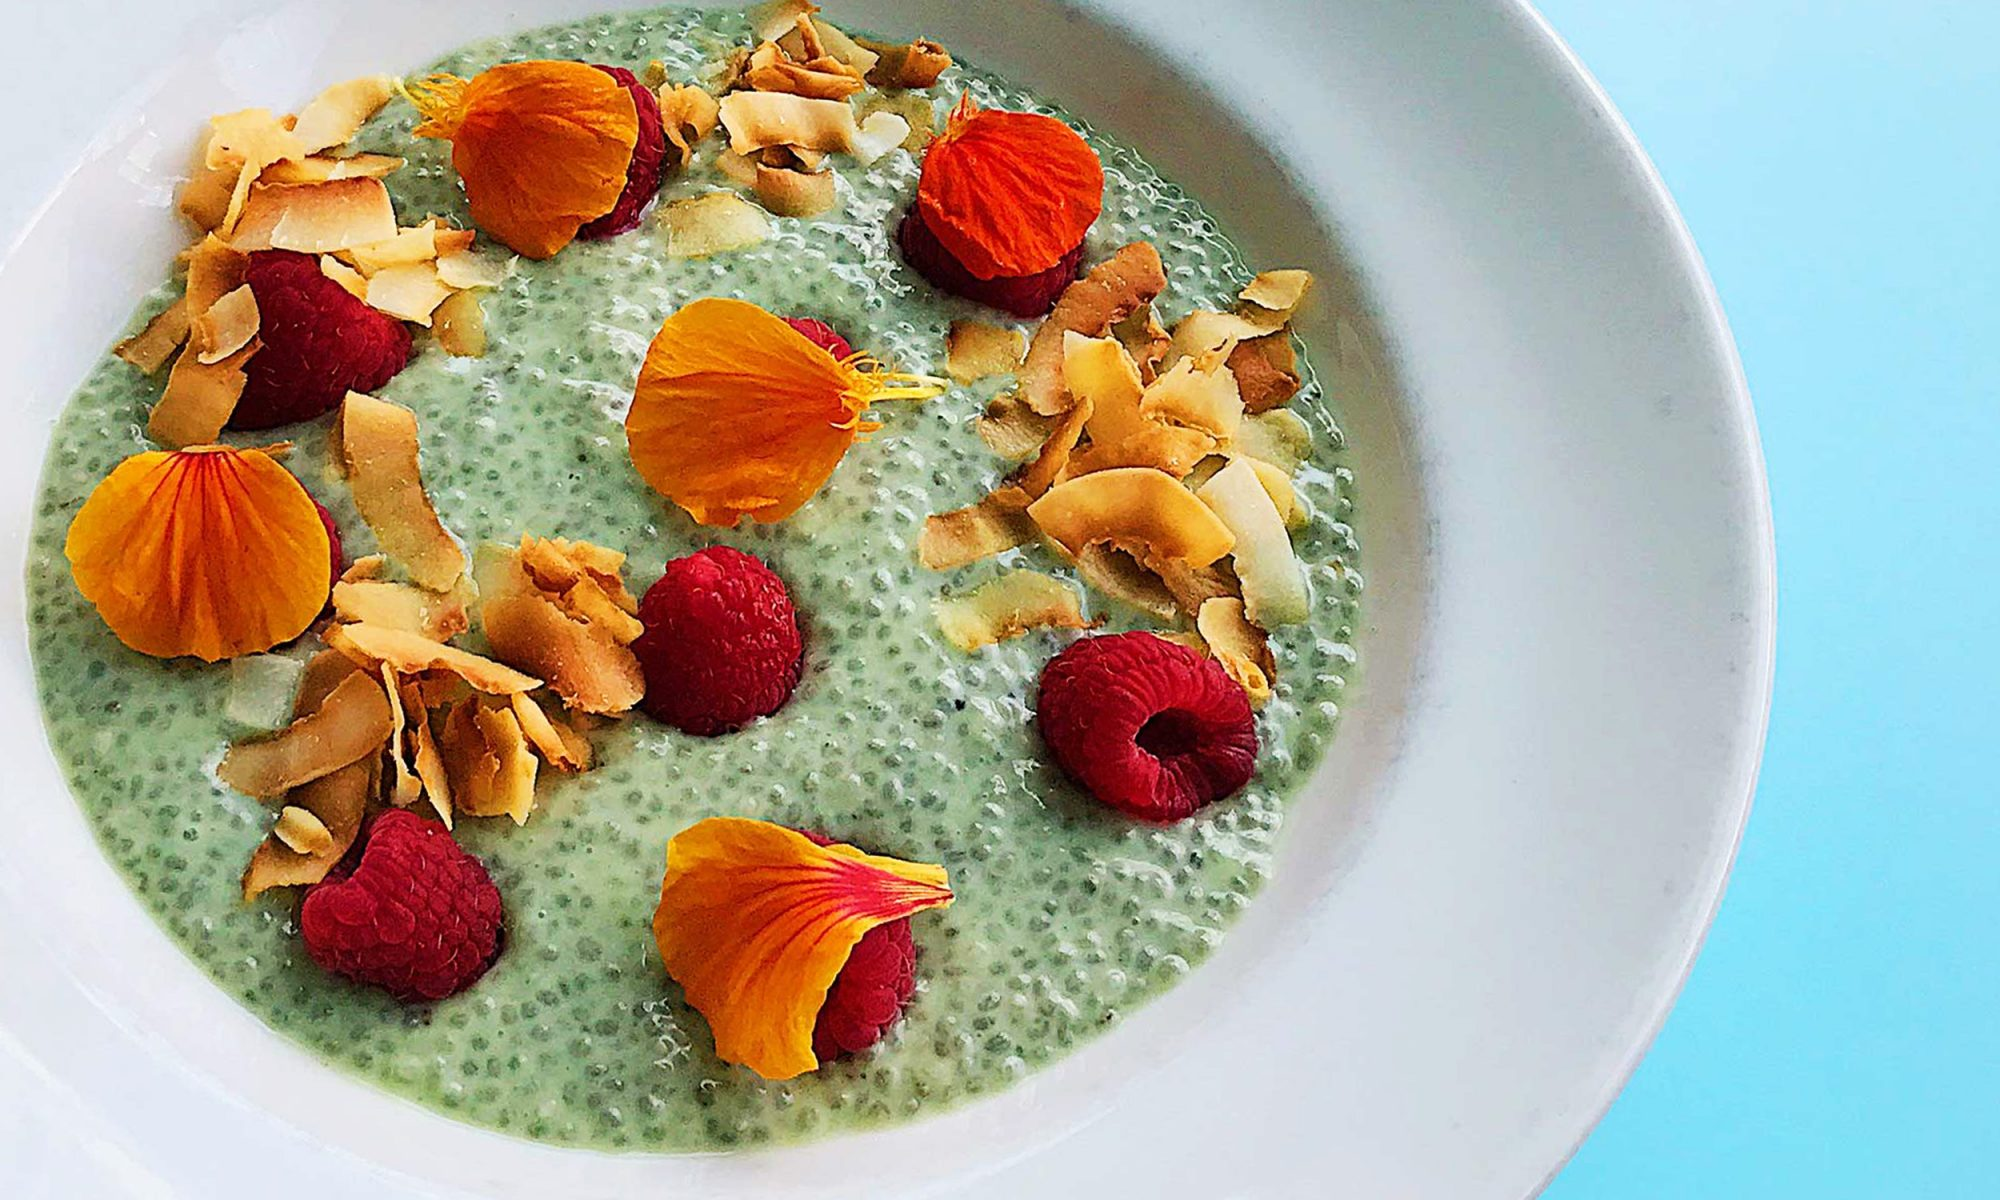 EC: This Four-Ingredient Chia Pudding Recipe Is Endlessly Customizable